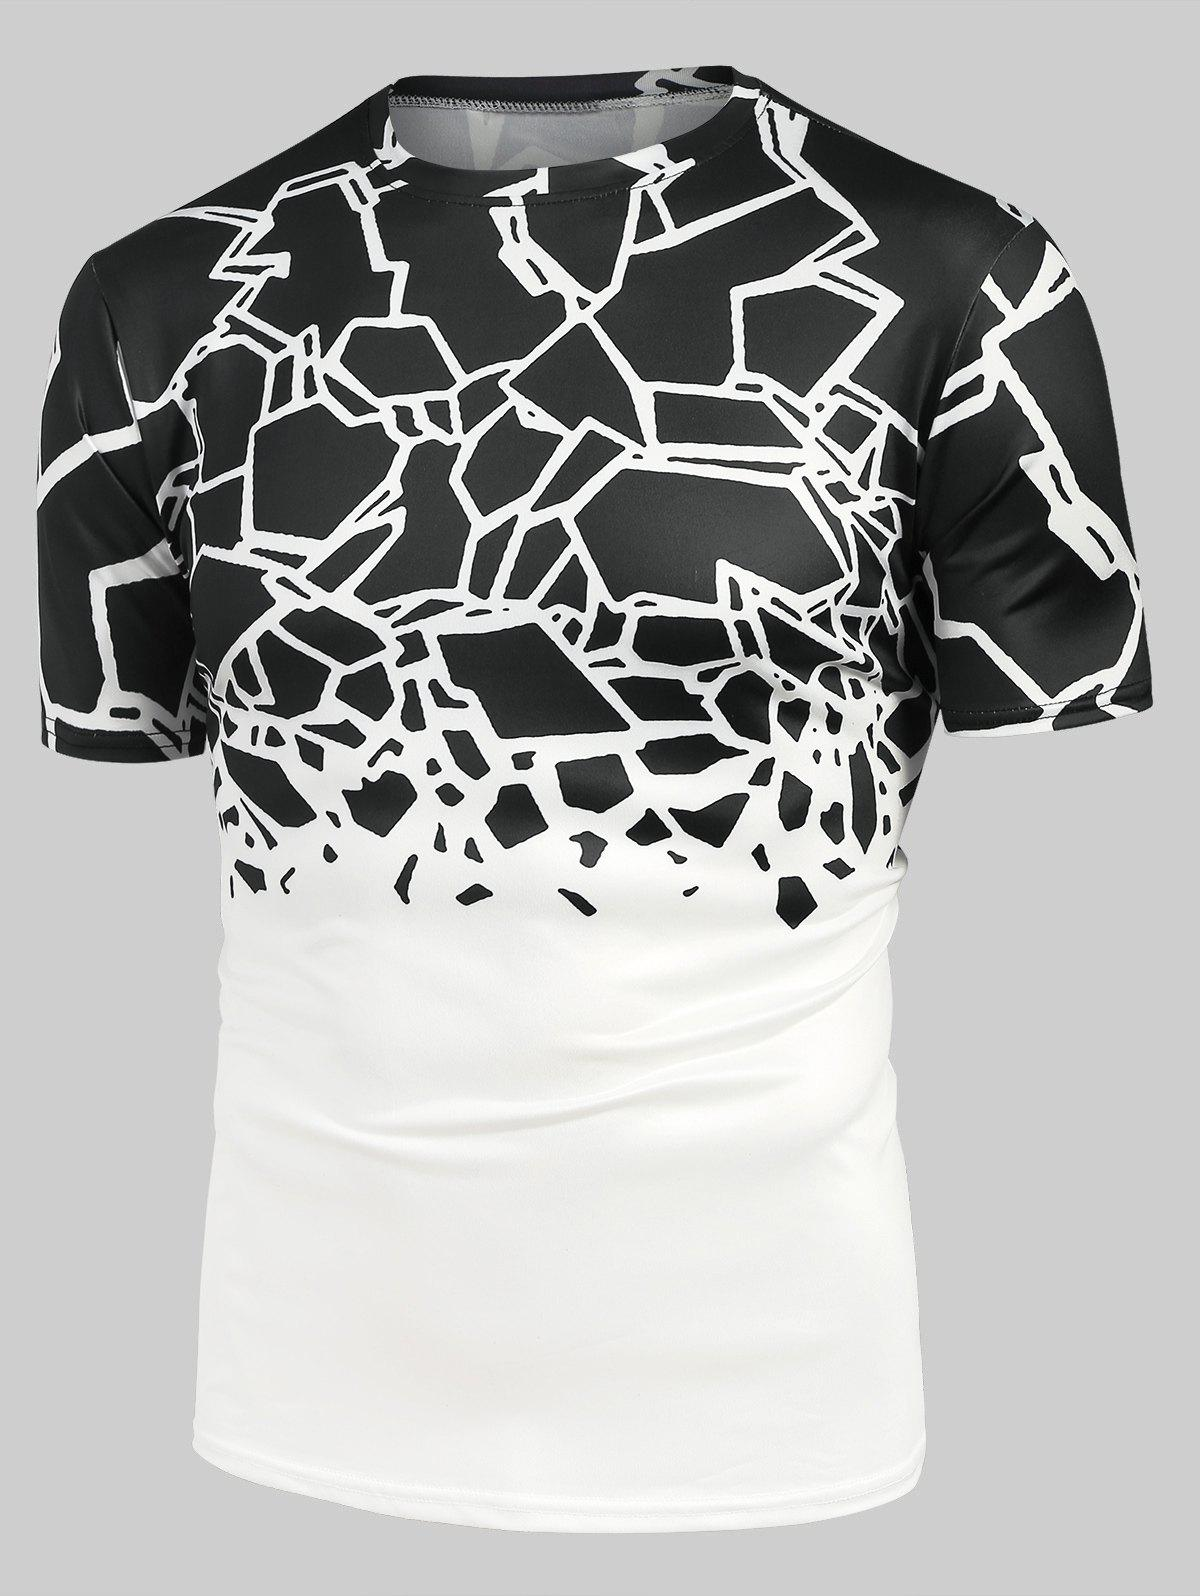 Online Abstract Geometric Print Short Sleeve Tee